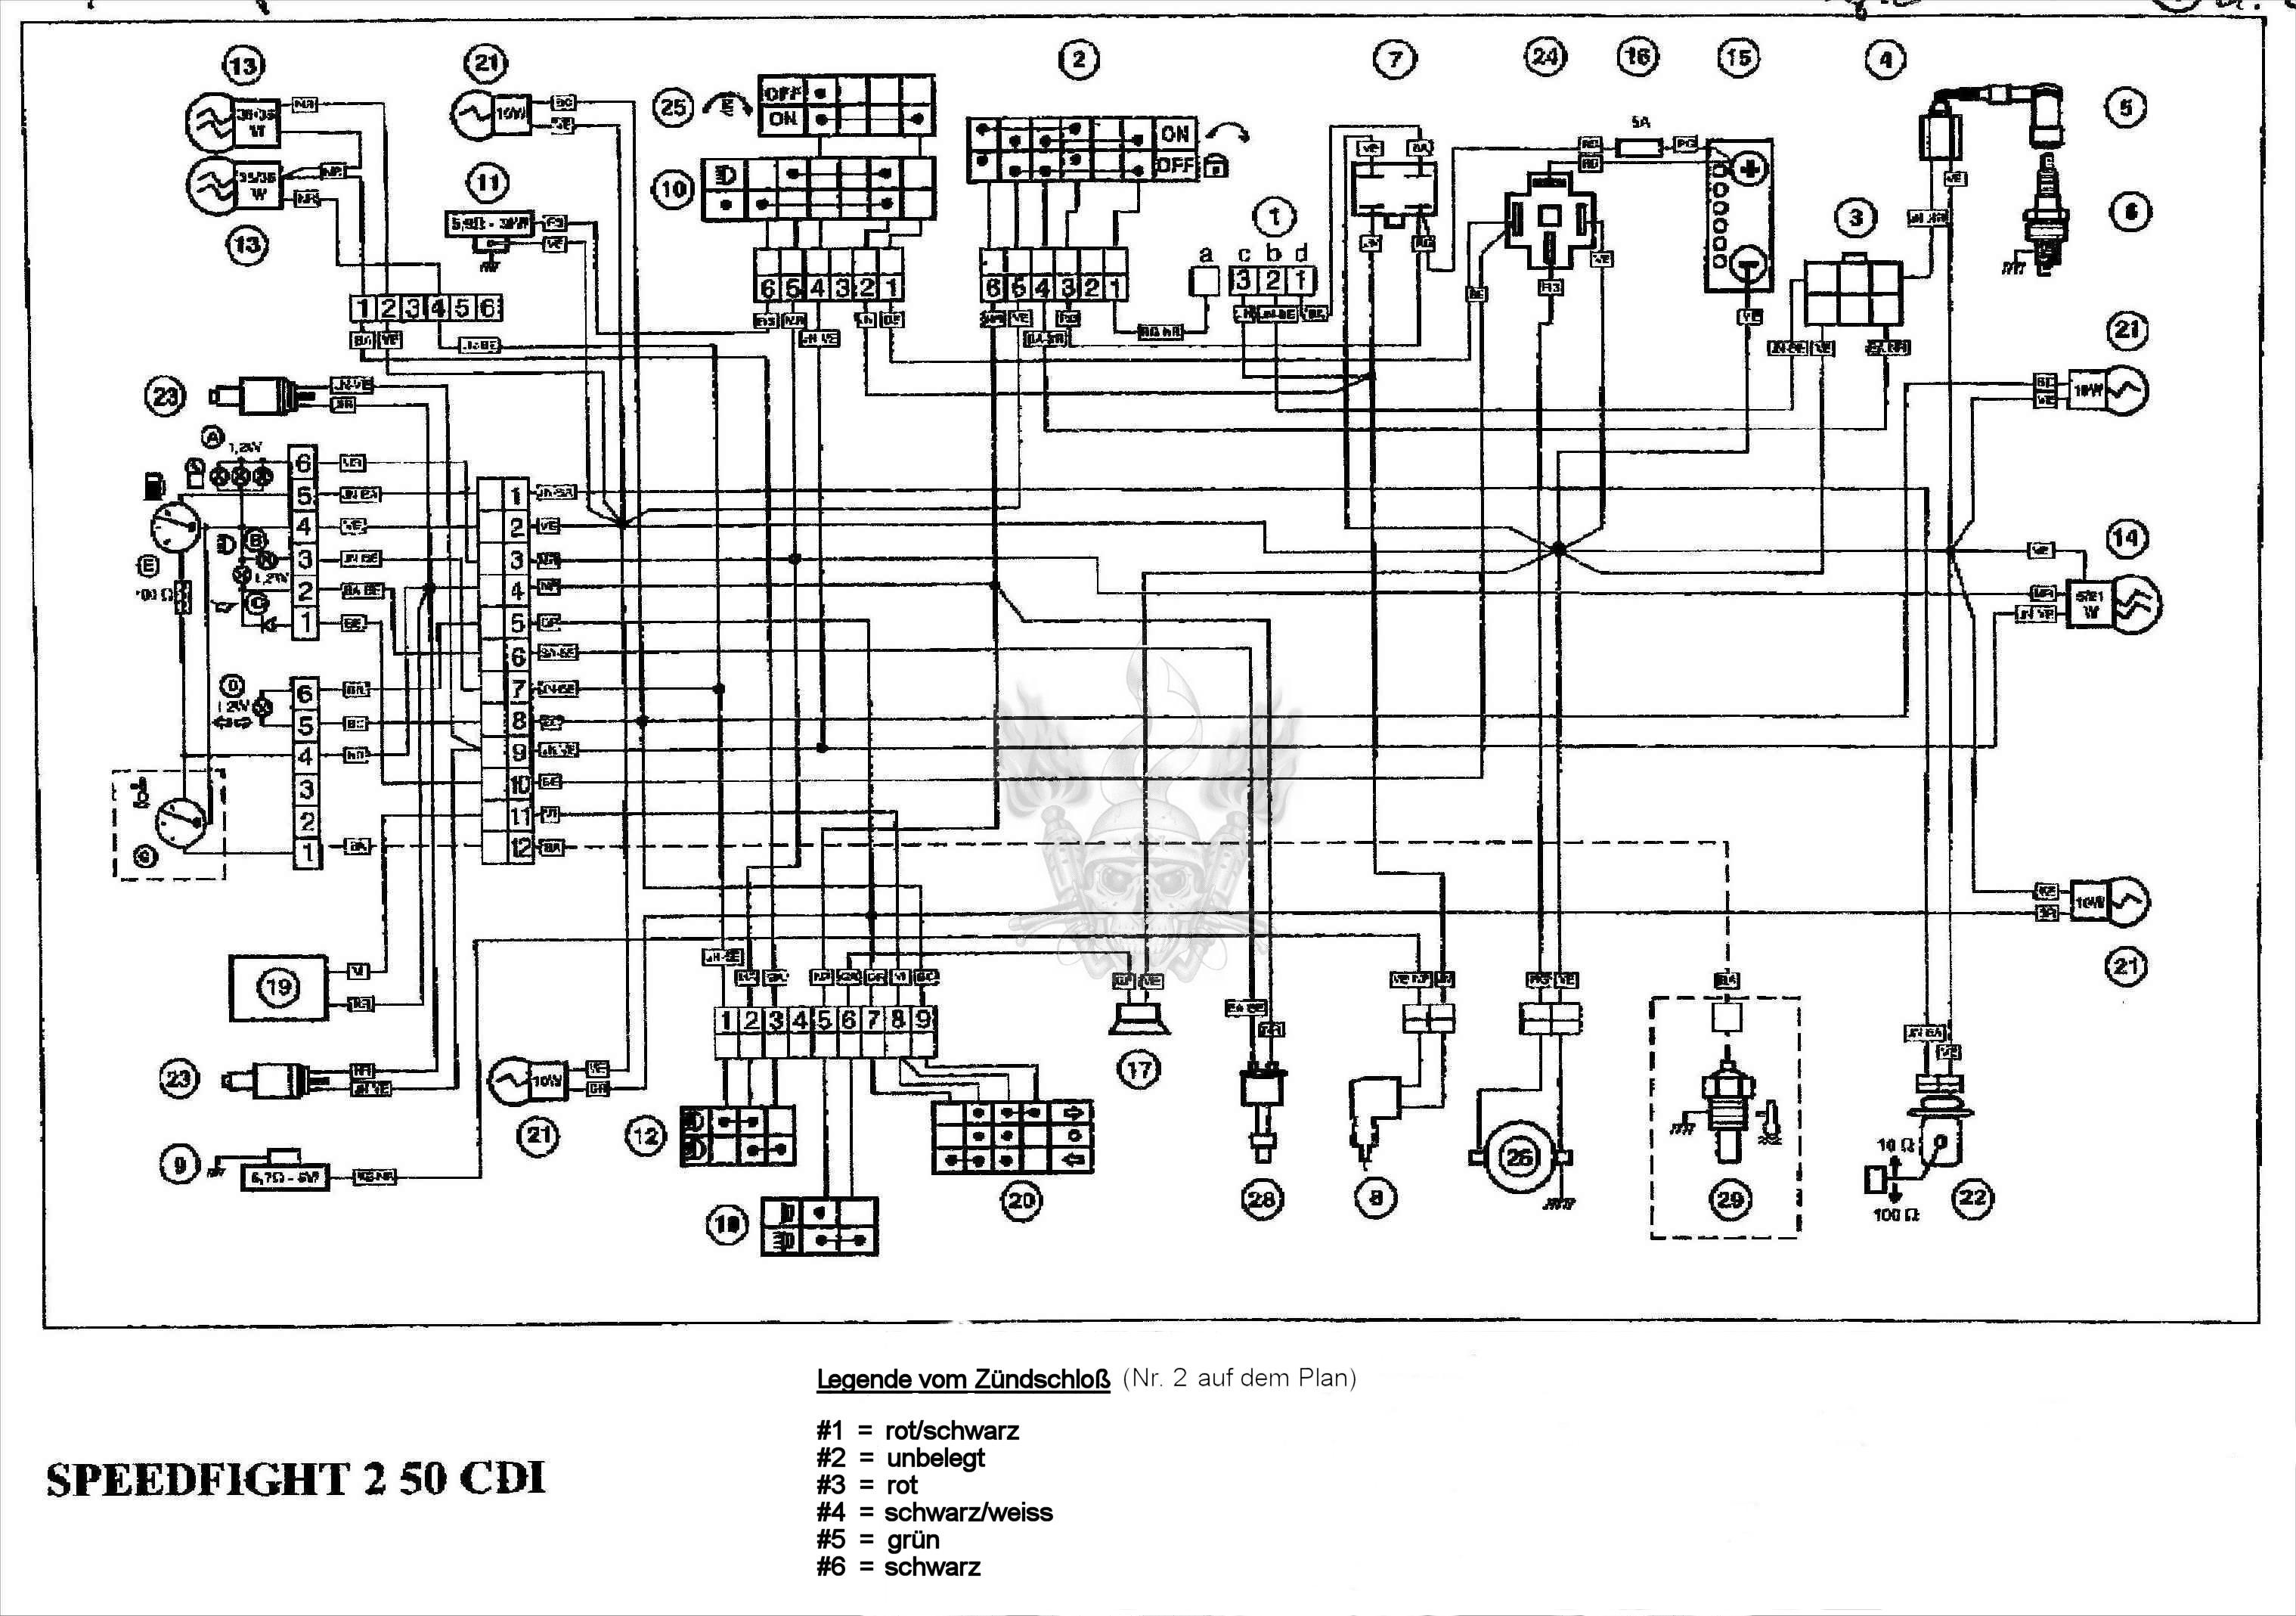 small resolution of peugeot 505 wiring diagram wiring librarypeugeot scooter wiring diagrams download moto schem peugeot speedfight 2 moto schem peugeot speedfight 2